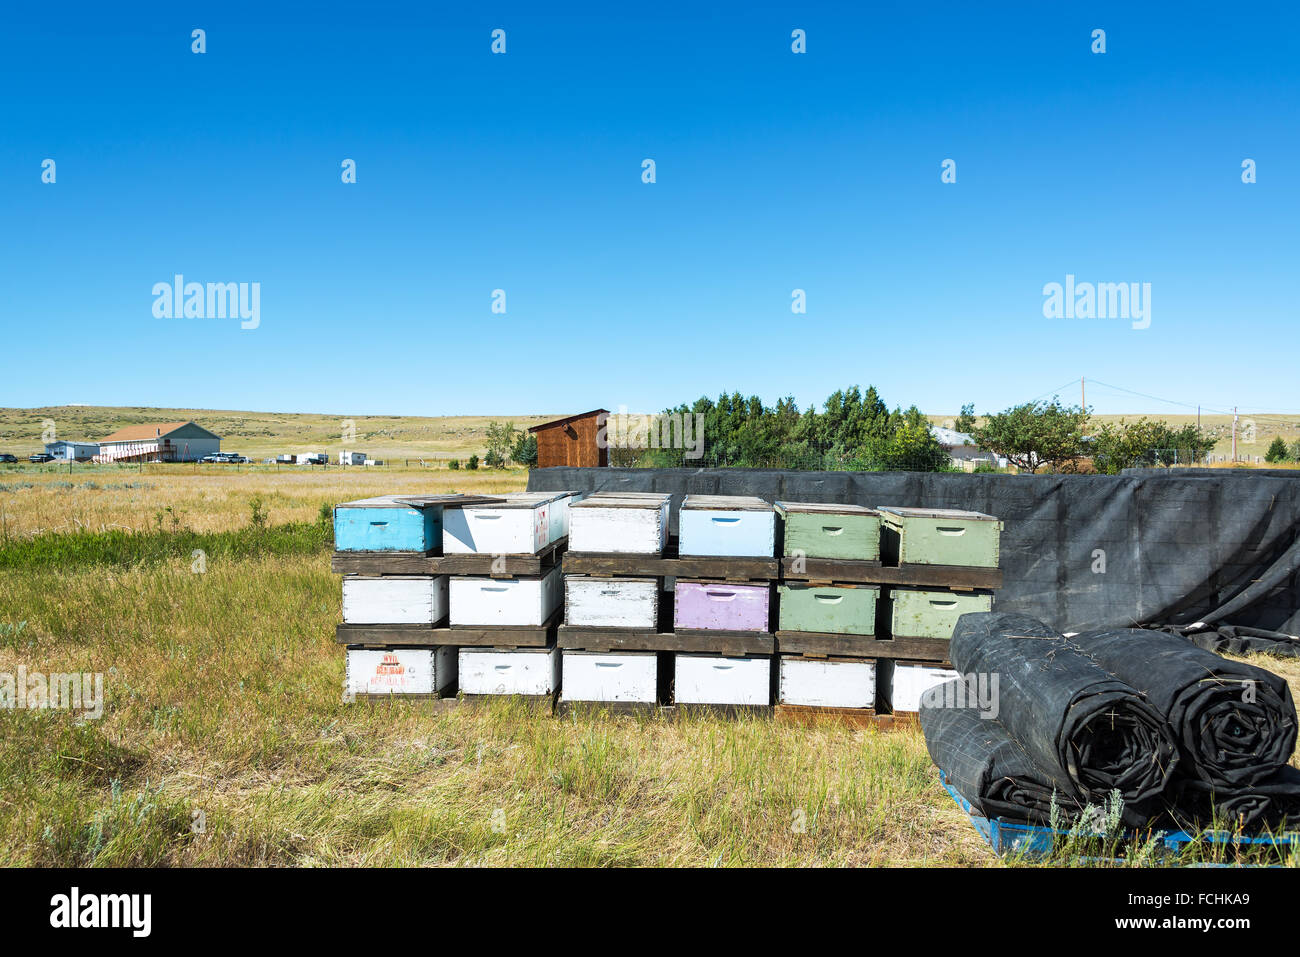 View of beehives in Buffalo, Wyoming - Stock Image